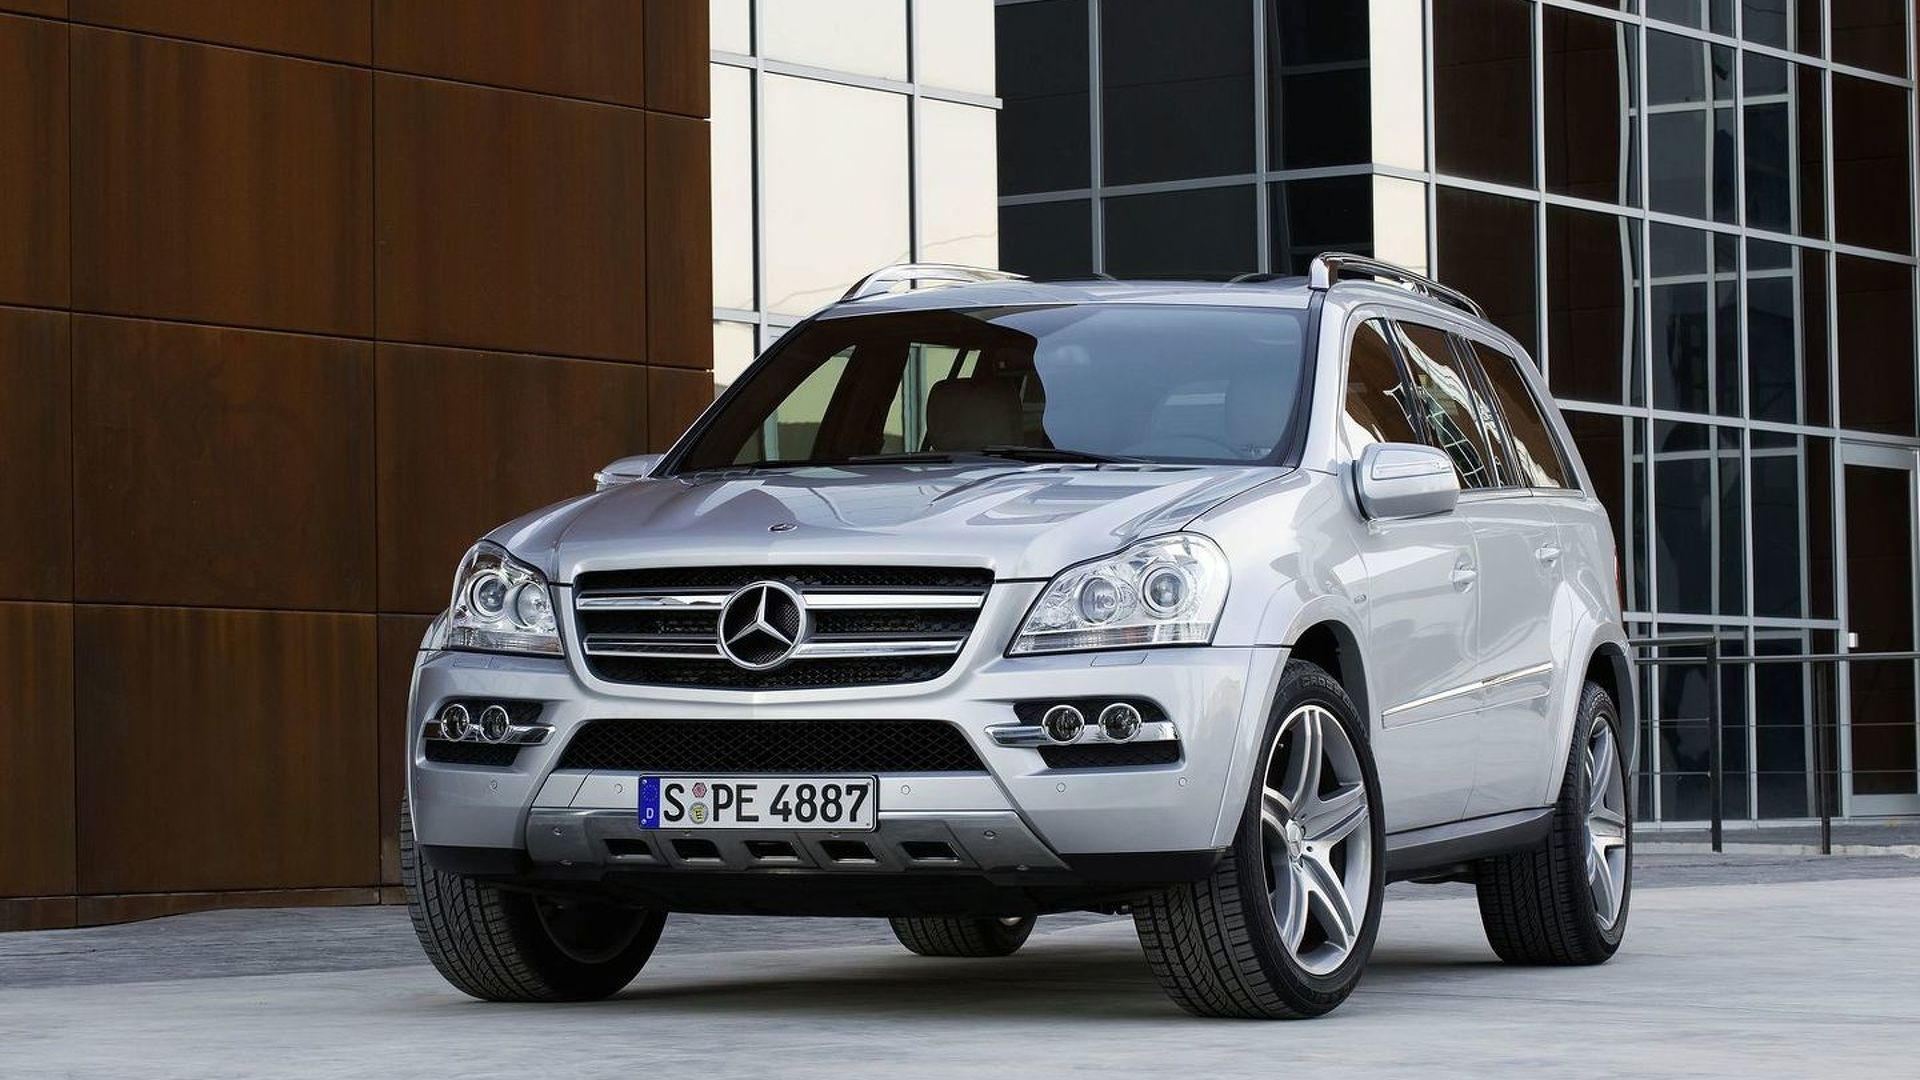 Mercedes GL-Class Soft Facelift Released